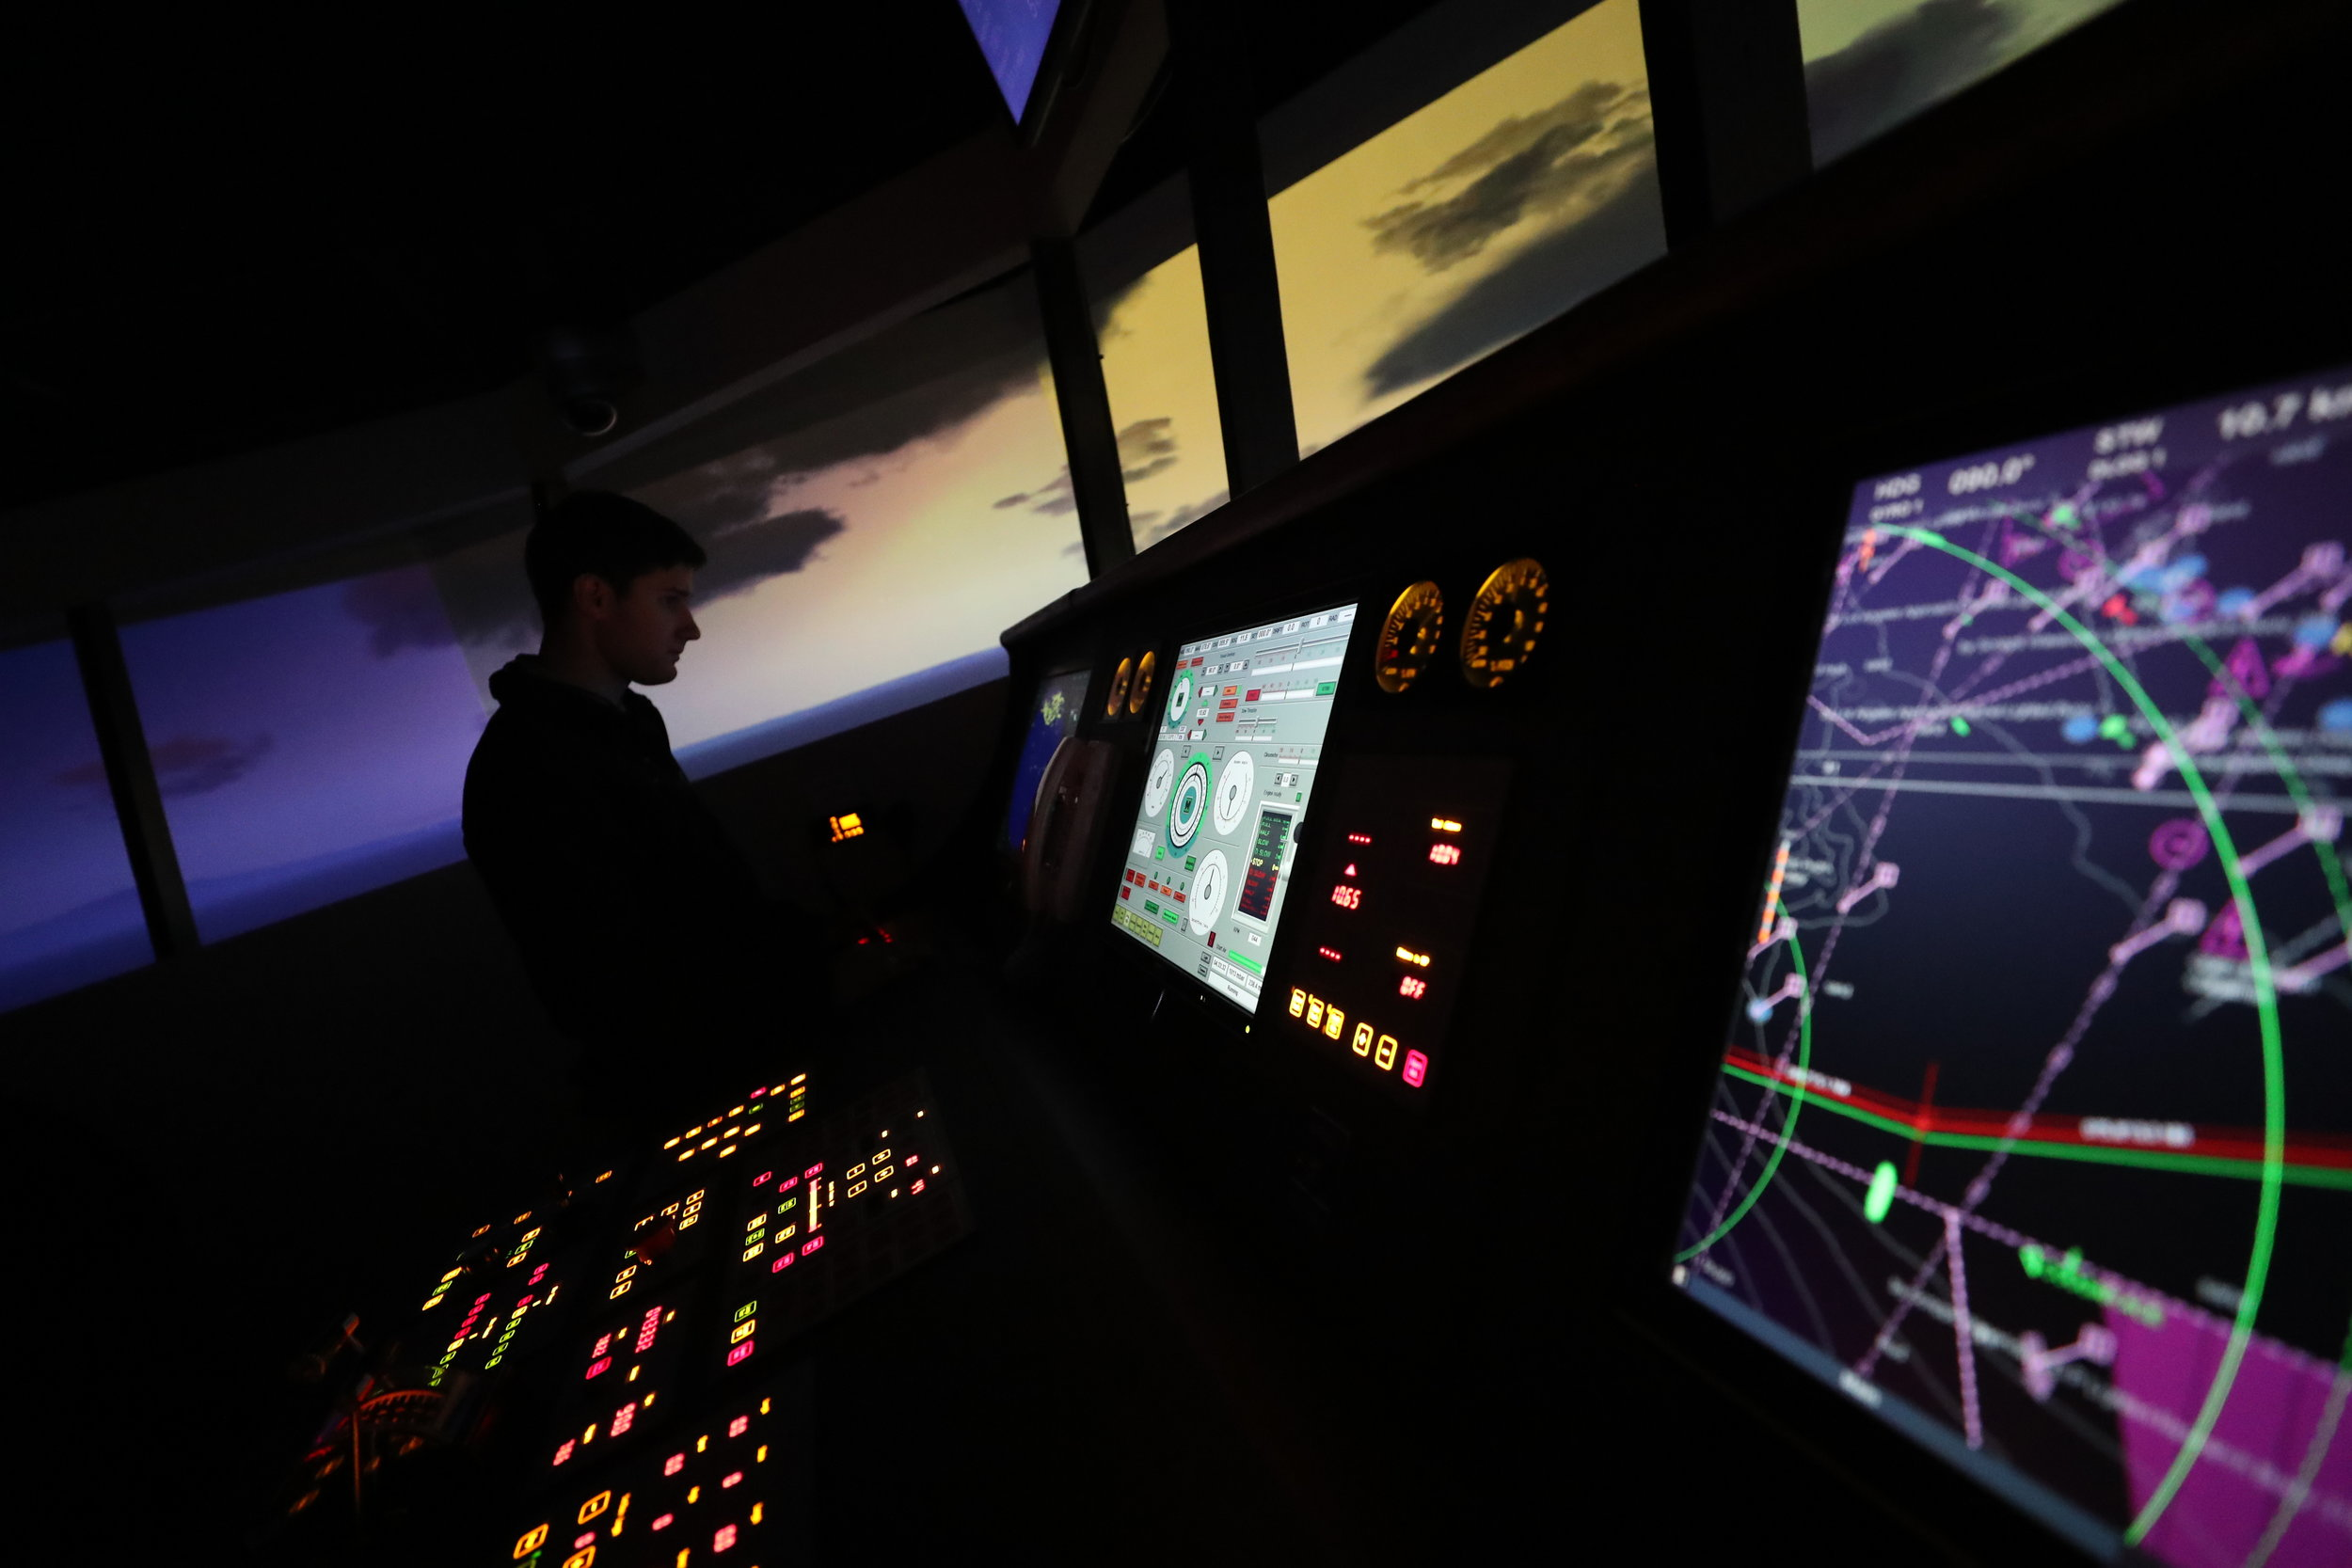 Tyler Mire looks at their ship's position while using the simulator on Wednesday, Nov. 29, 2017. With hands-on classes, mandatory time on the TS General Rudder and experience on three cruises, the cadets in the Maritime Academy are highly trained professionals in the maritime industry when they graduate.